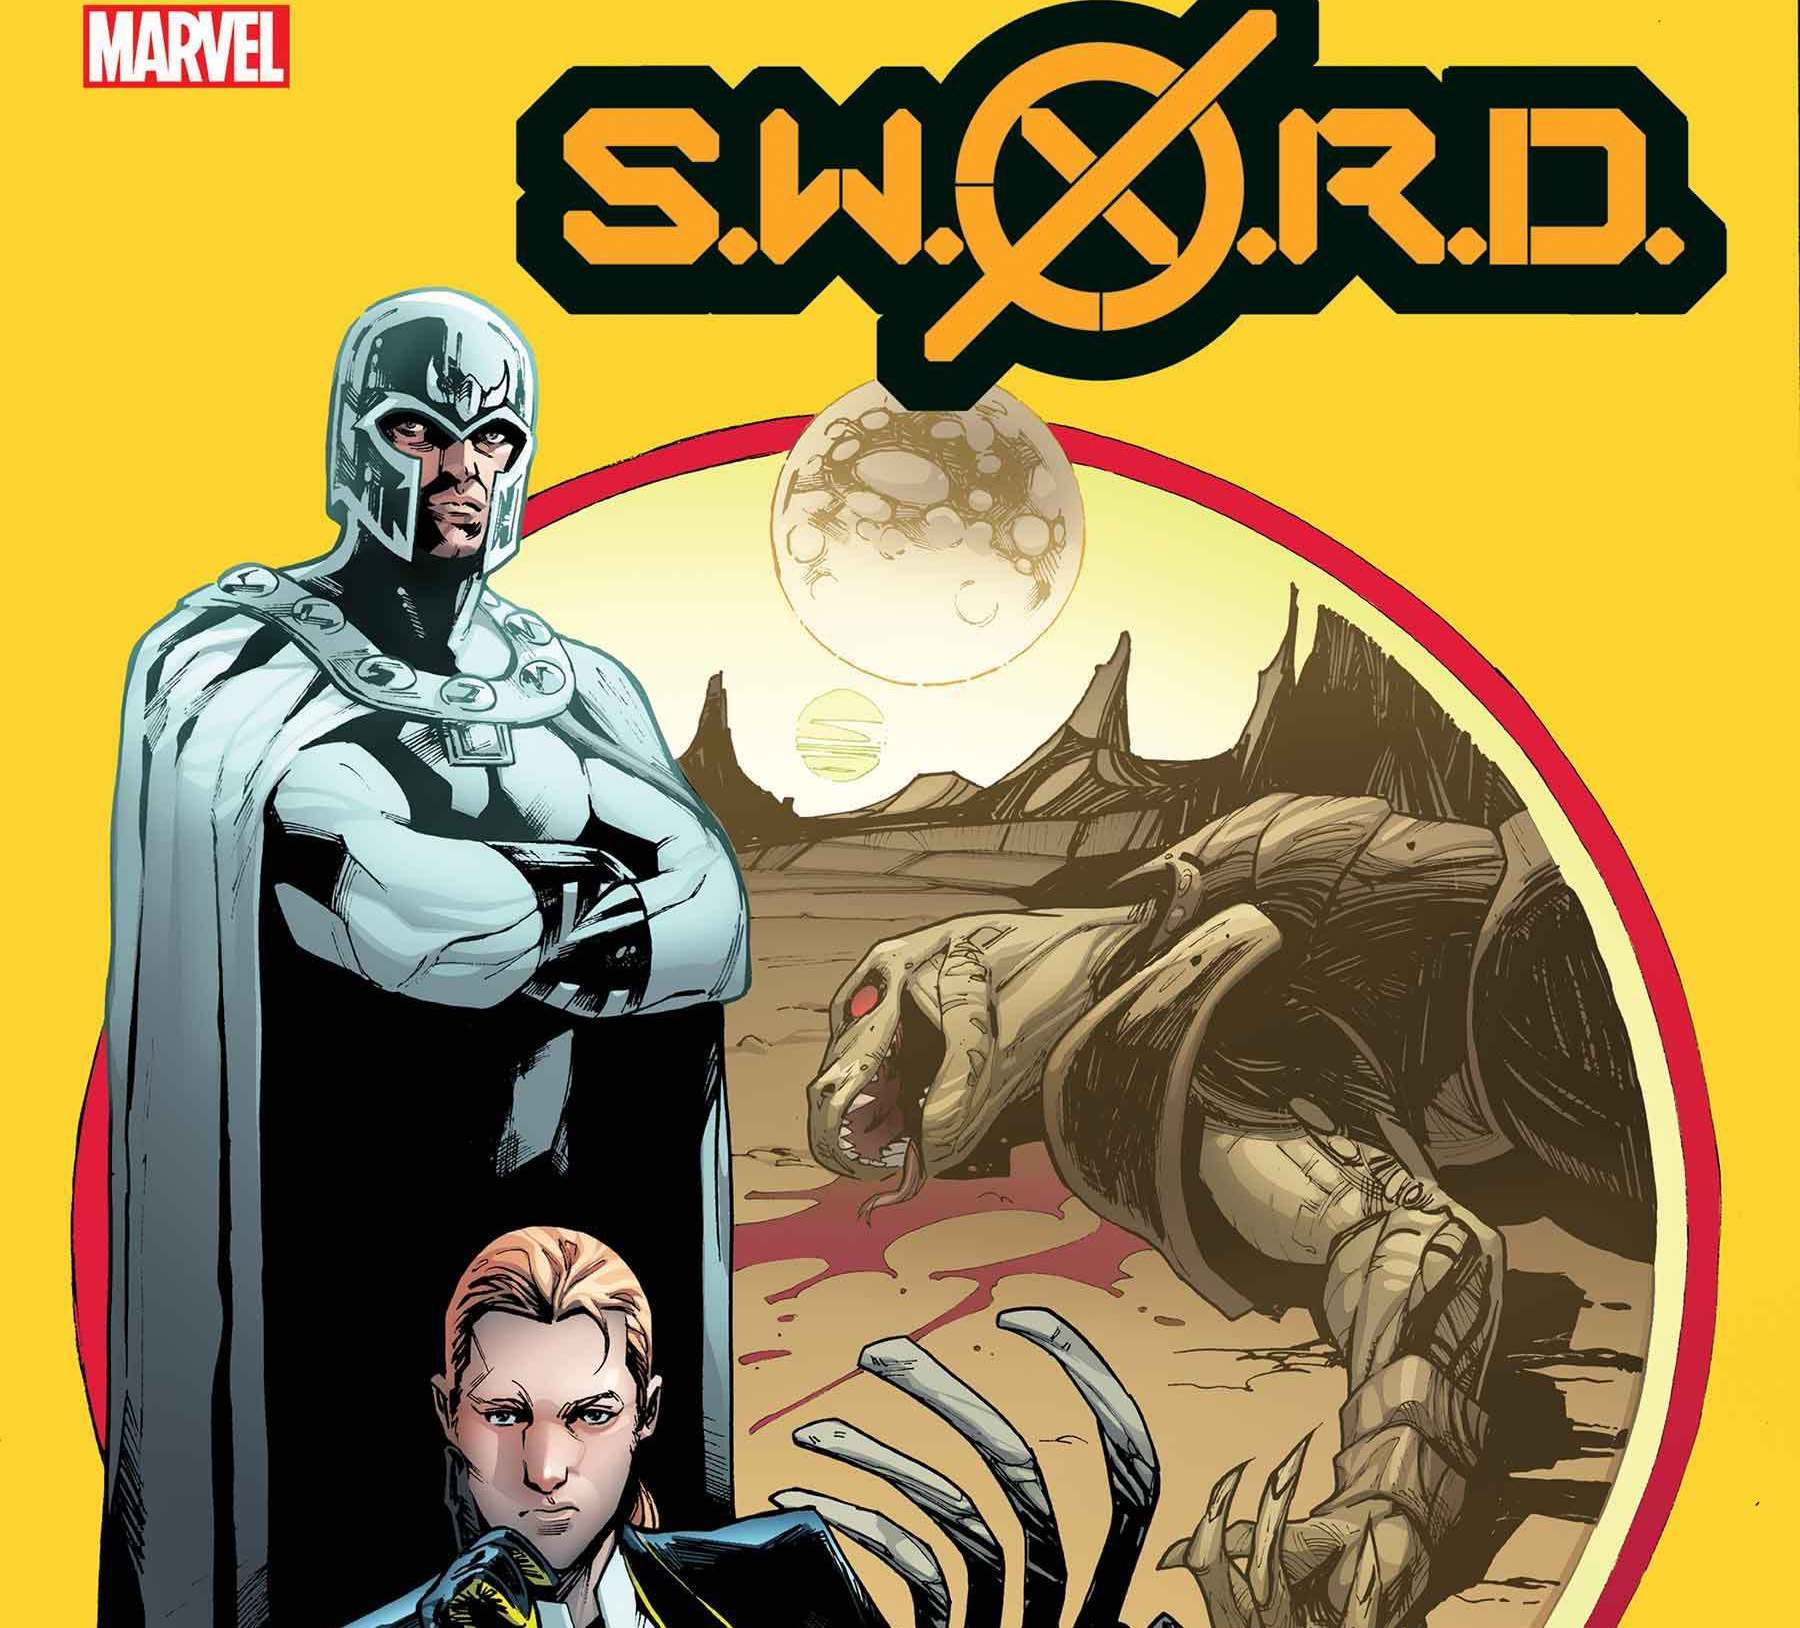 EXCLUSIVE First Look: S.W.O.R.D. #5 cover and solicit